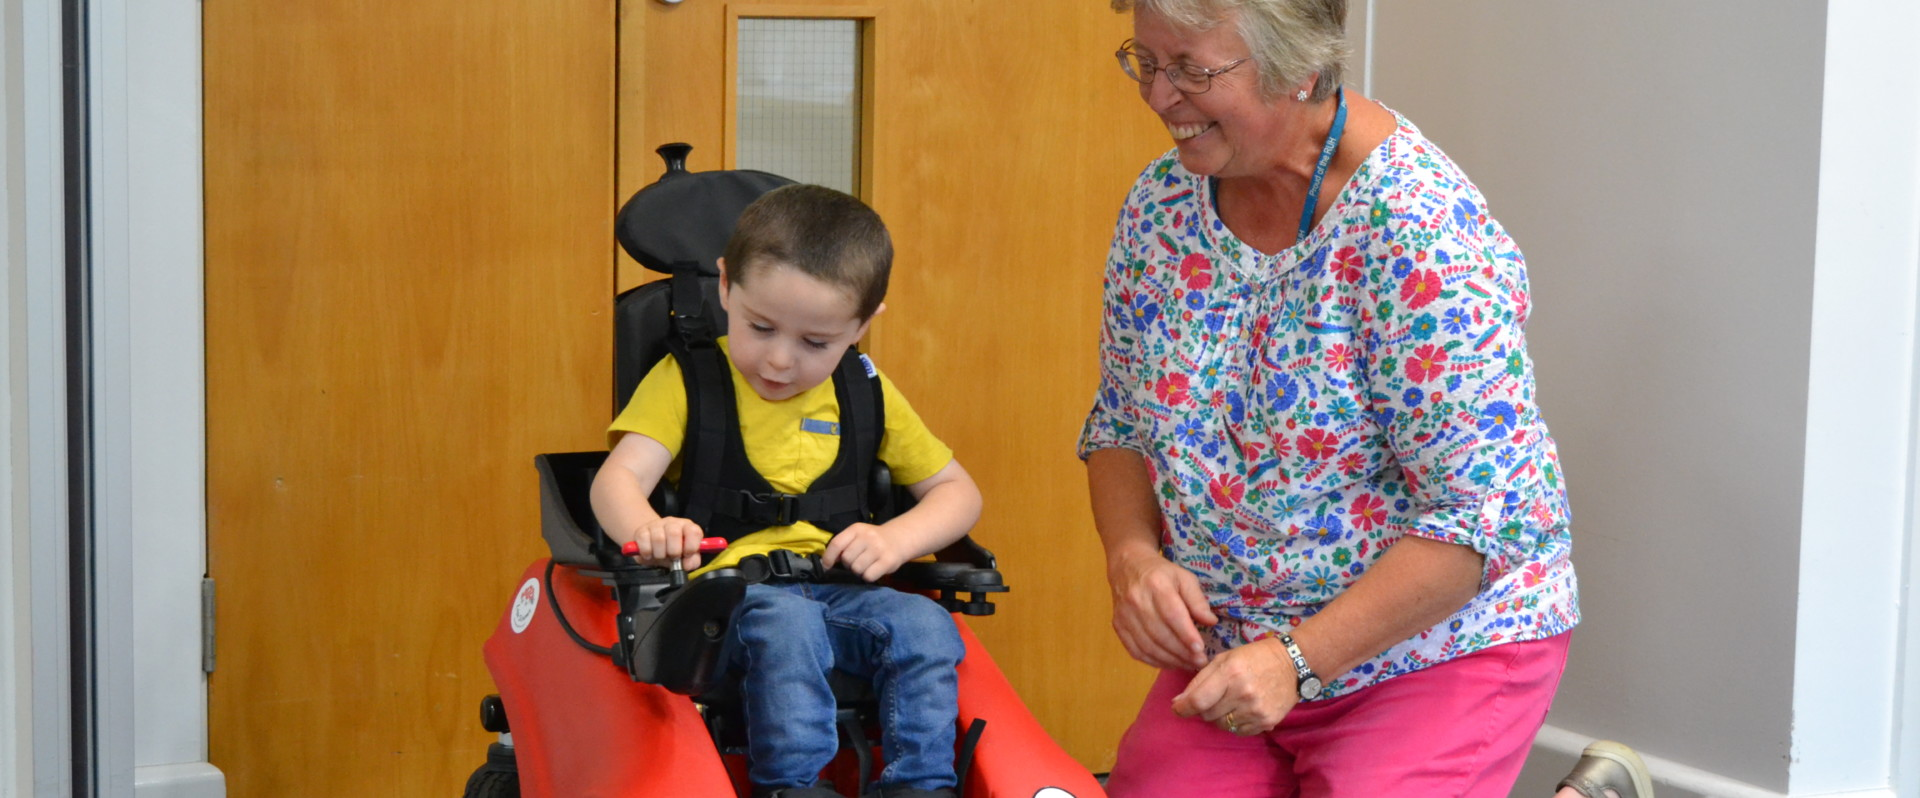 An occupational therapist helps a little boy learn how to use a Wizzybug